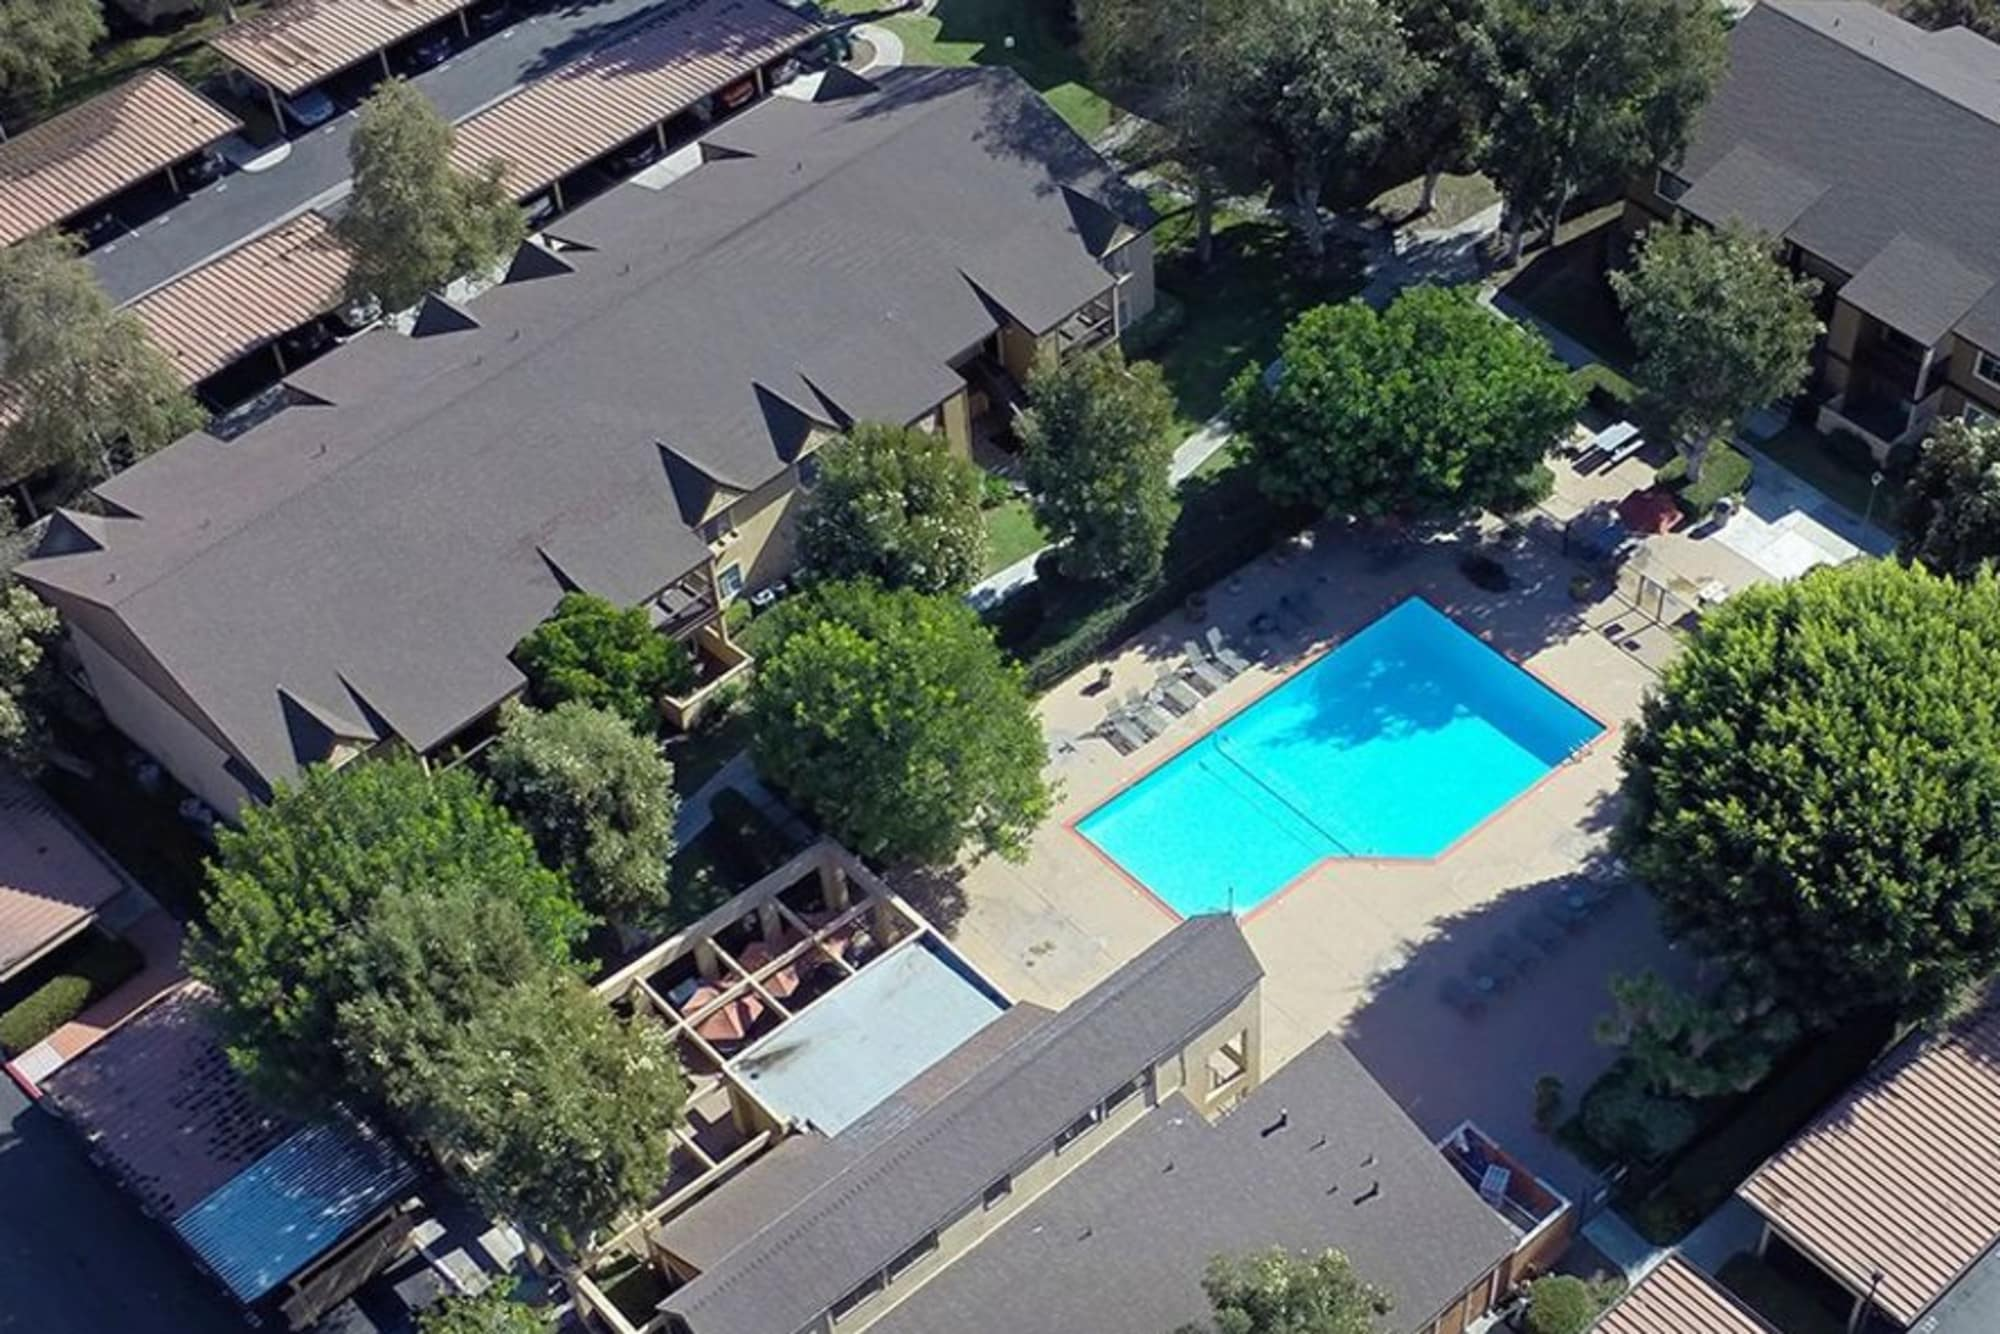 Pool Aerial View at Terra Nova Villas in Chula Vista, CA